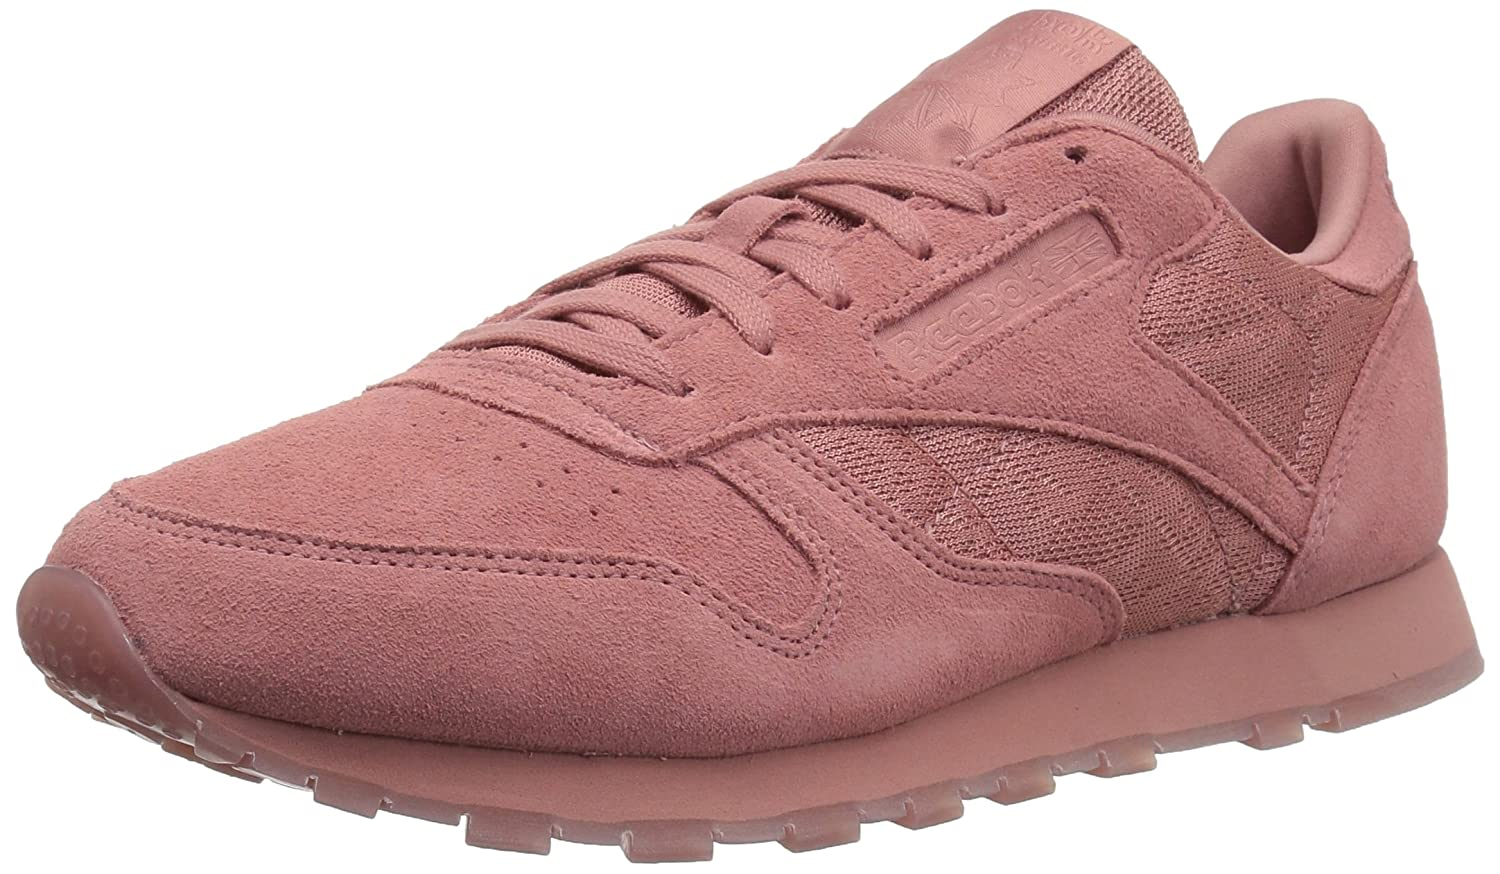 Reebok Women's Cl Lthr Lace Sneaker B074V1JDQY 6.5 B(M) US|Sandy Rose/White